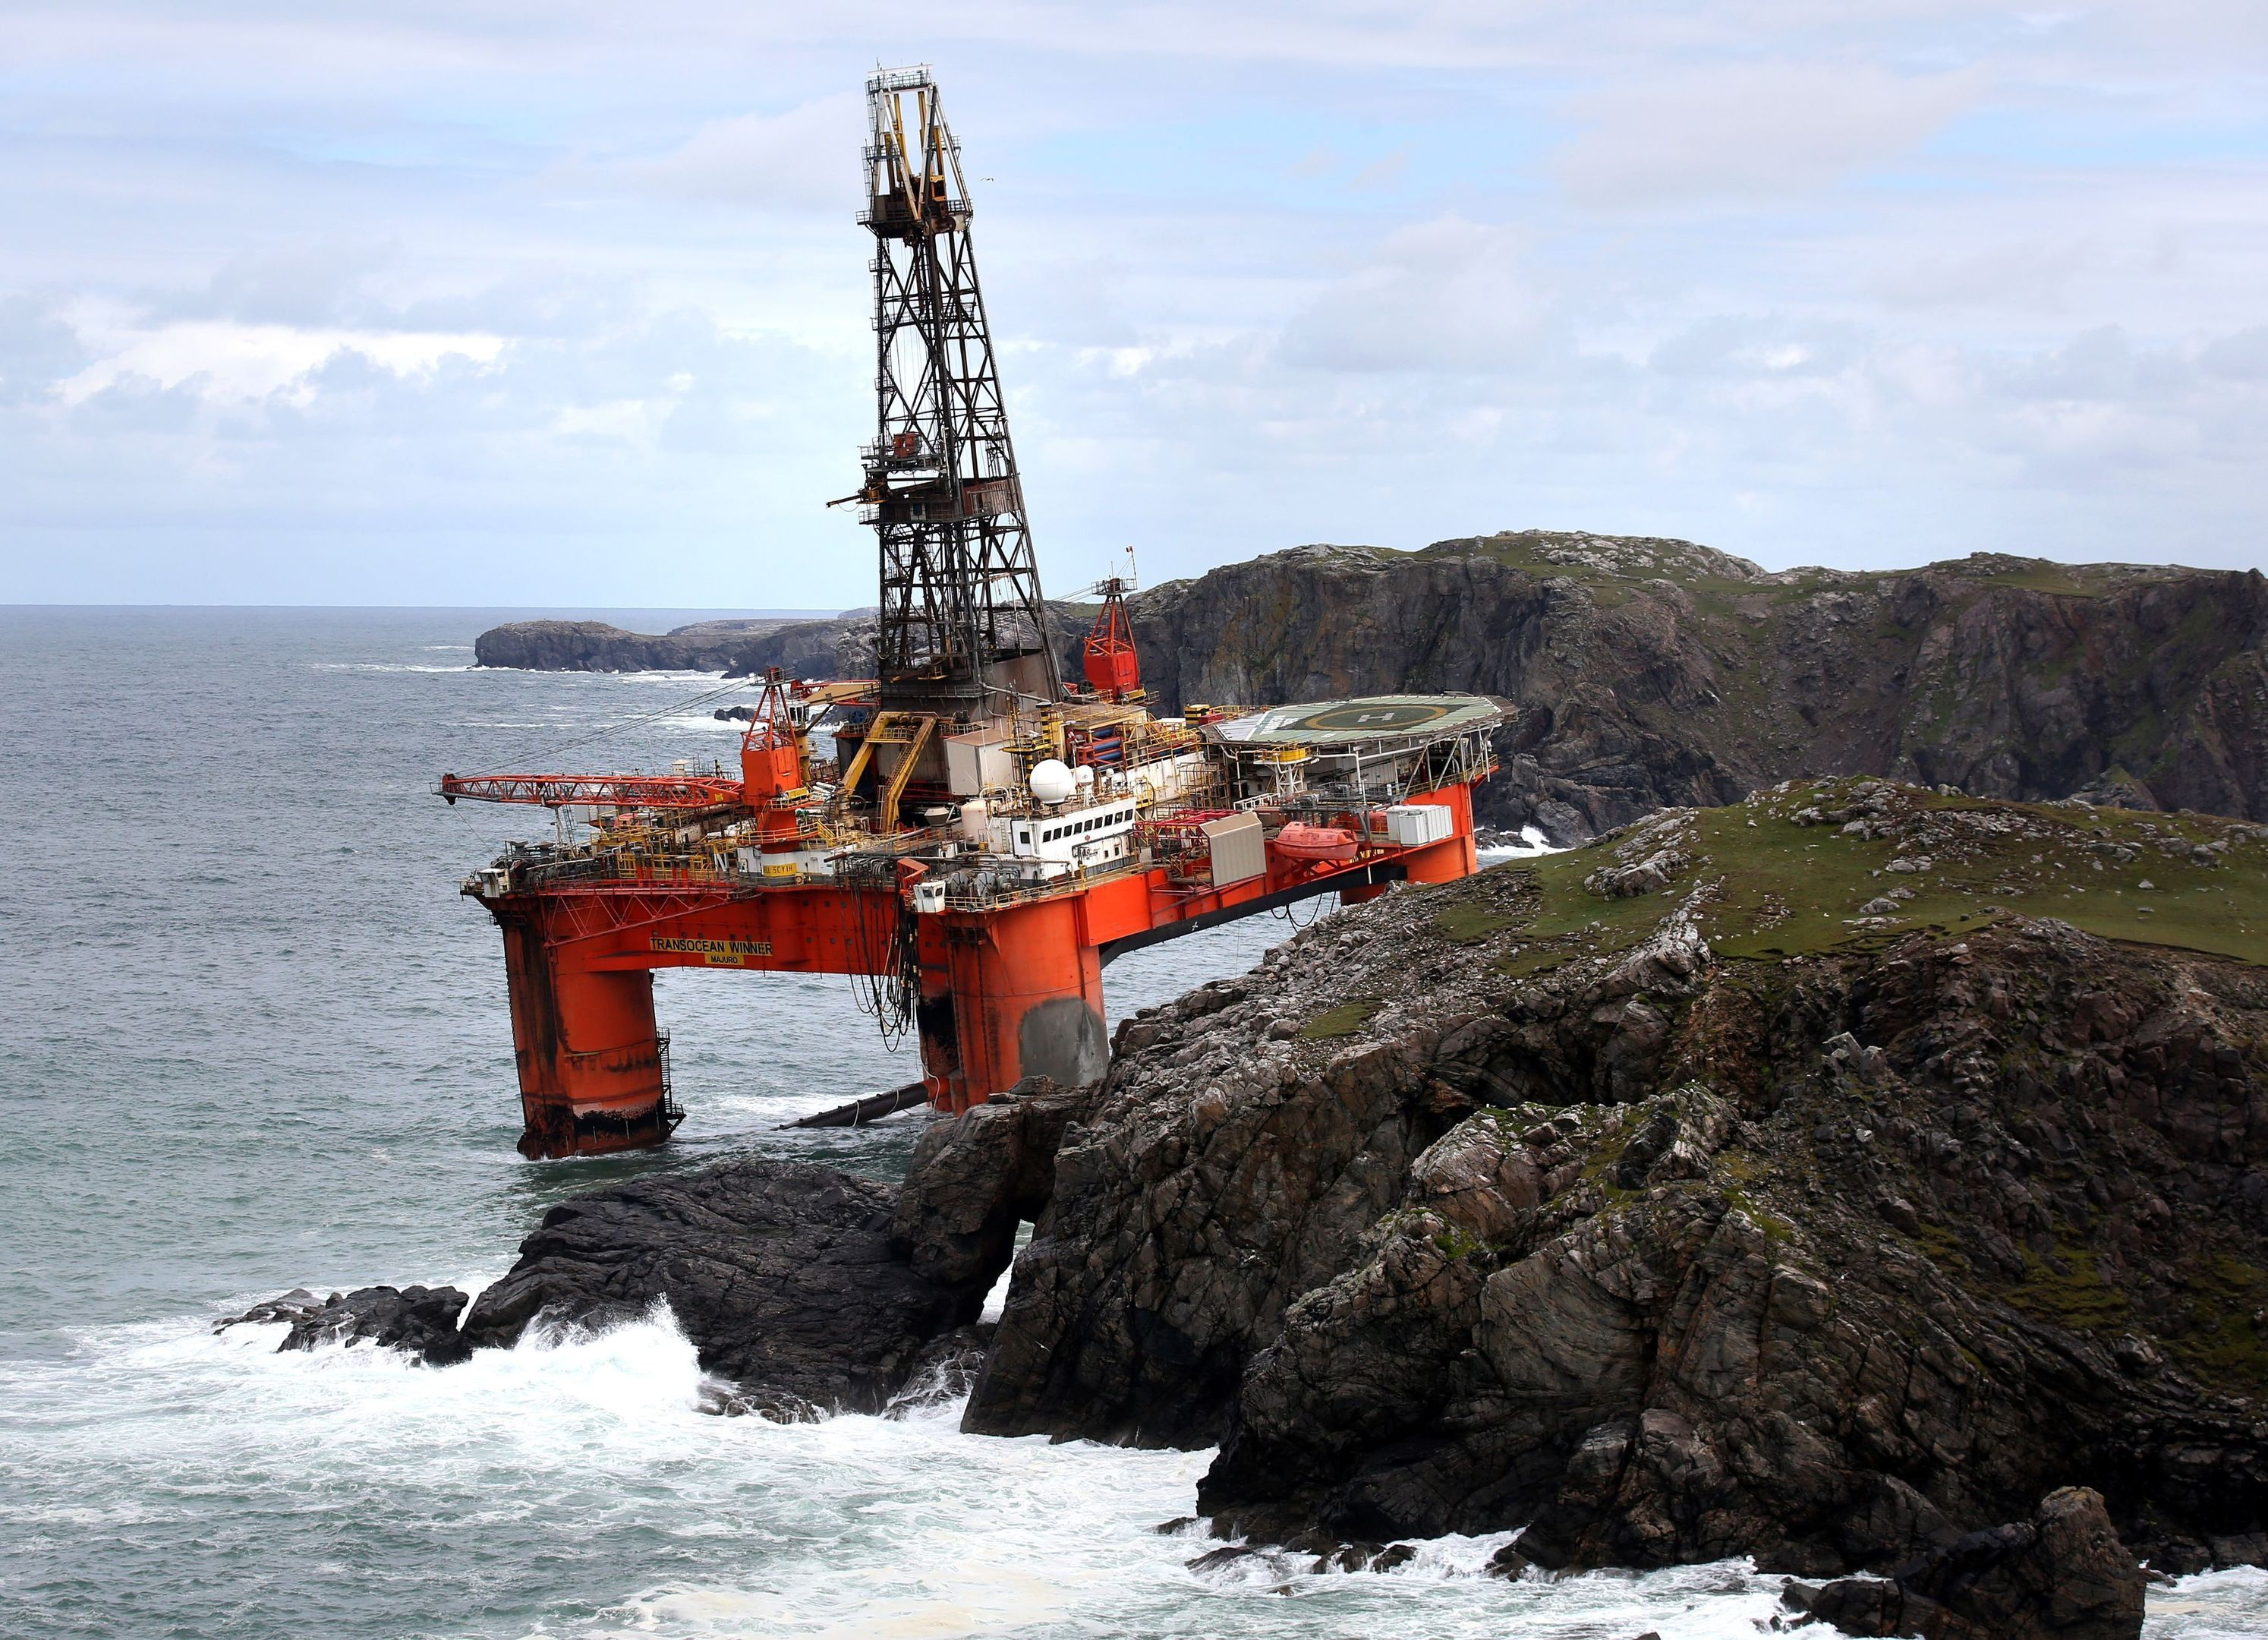 Transocean Winner drilling rig after it ran aground on the beach of Dalmore in the Carloway area of the Isle of Lewis (Andrew Milligan/PA)